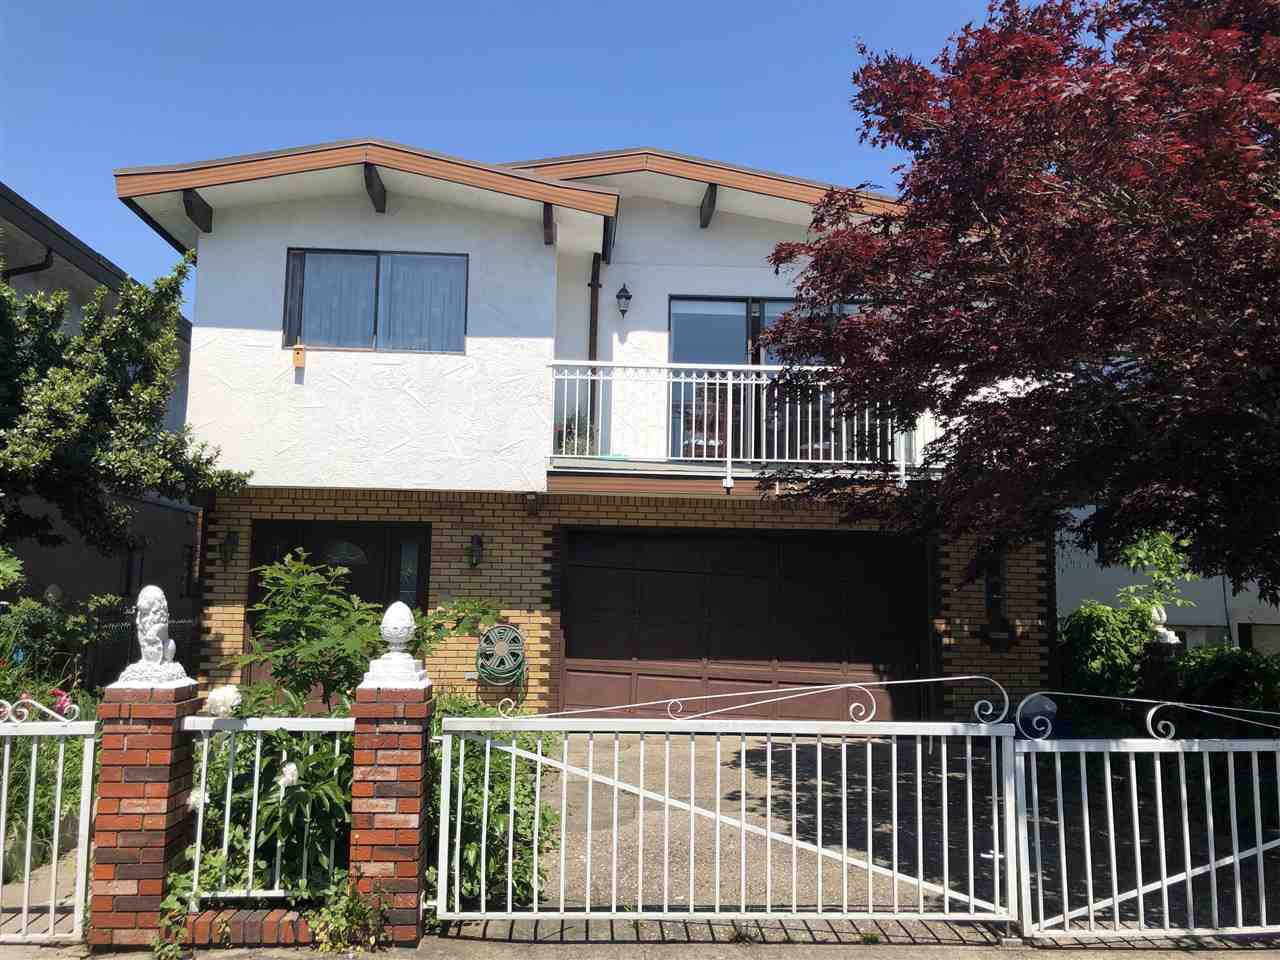 Main Photo: 1525 E 31ST Avenue in Vancouver: Knight House for sale (Vancouver East)  : MLS®# R2432374